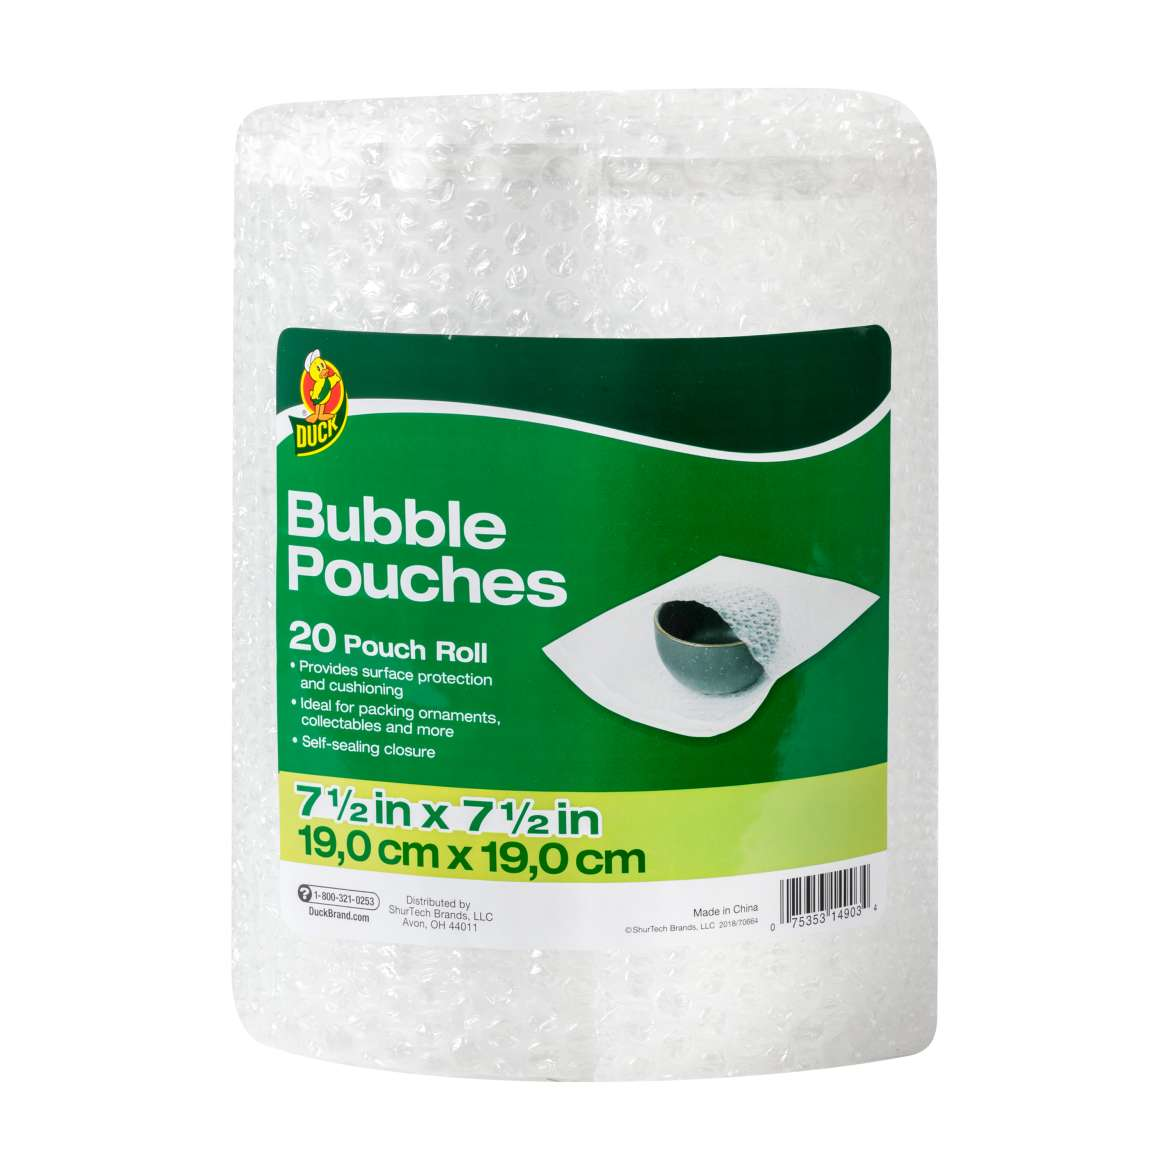 Duck Bubble Pouches on a Roll, 7.5 in. x 7.5 in., Clear, 20-Count